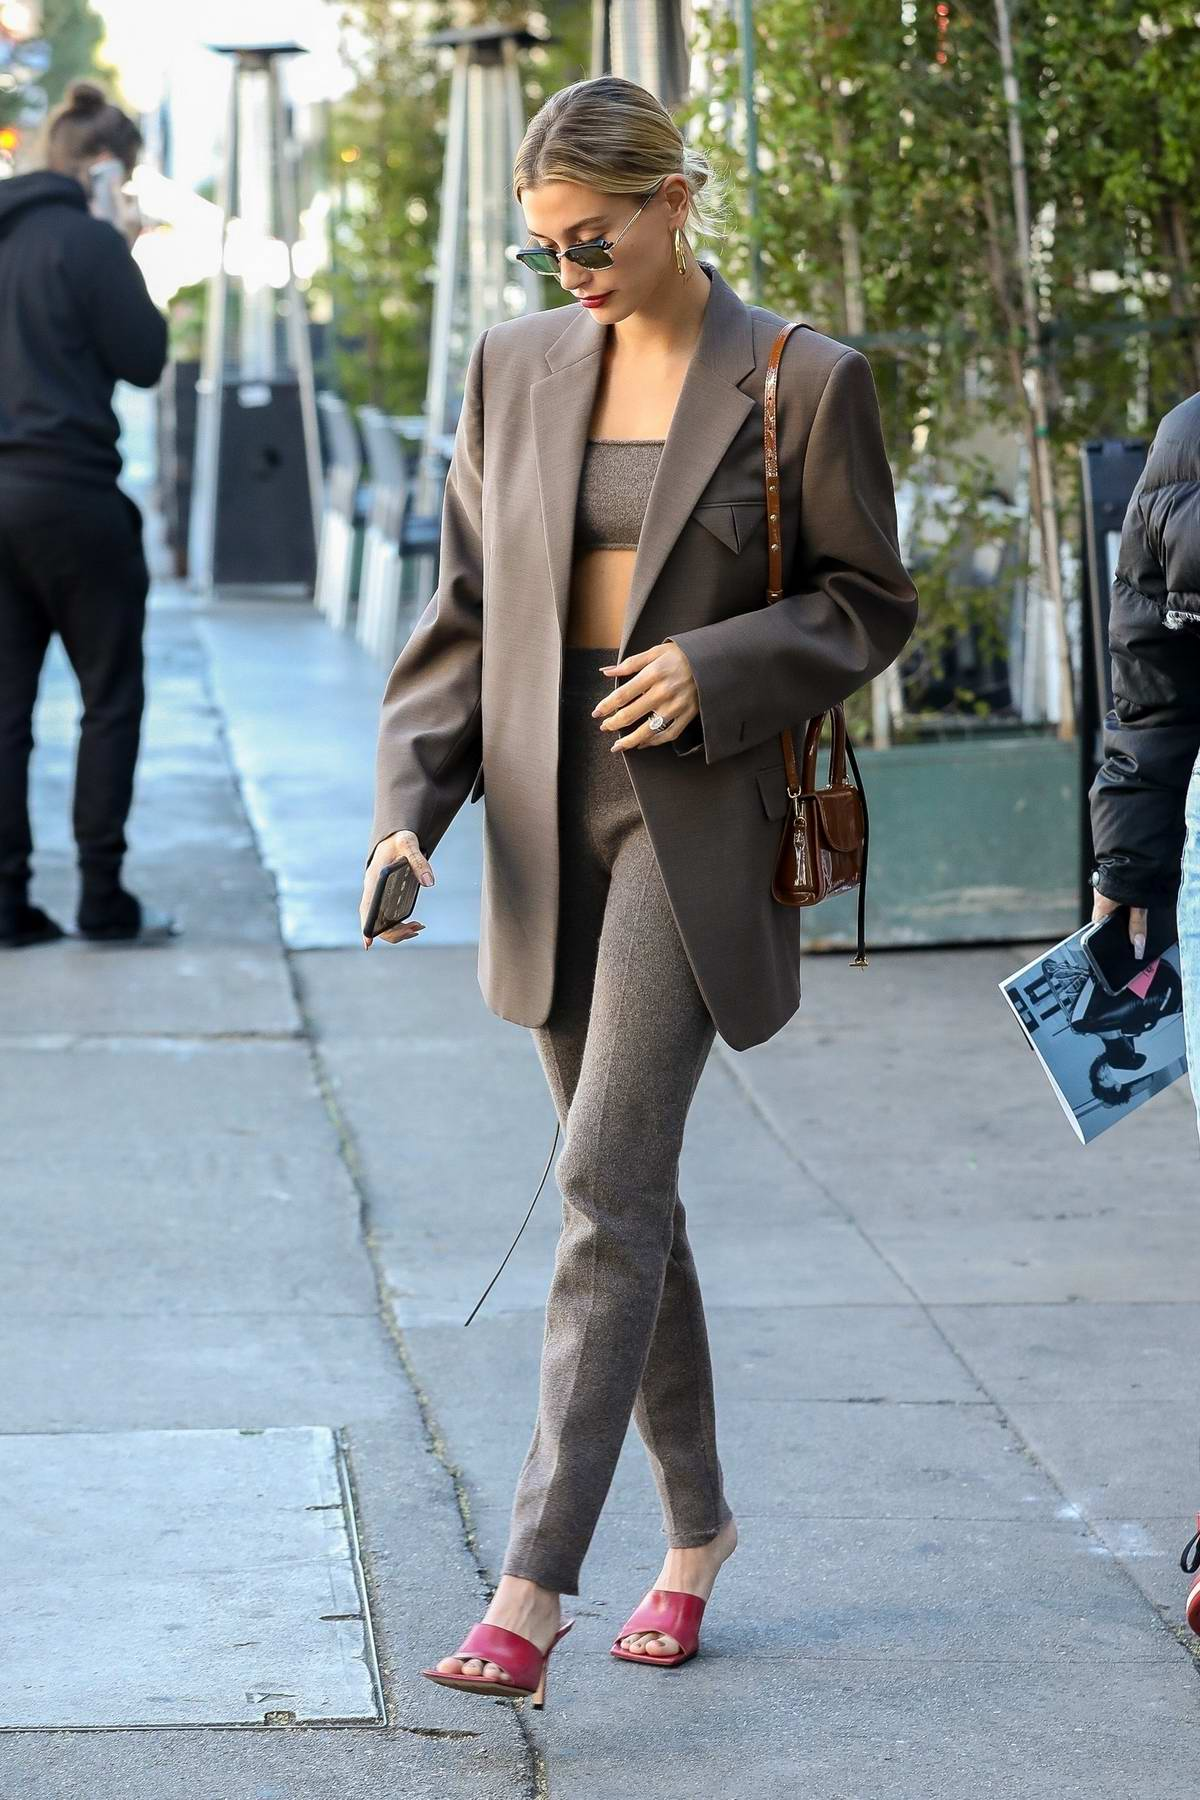 hailey bieber looks stylish in a brown suit and red shoes as